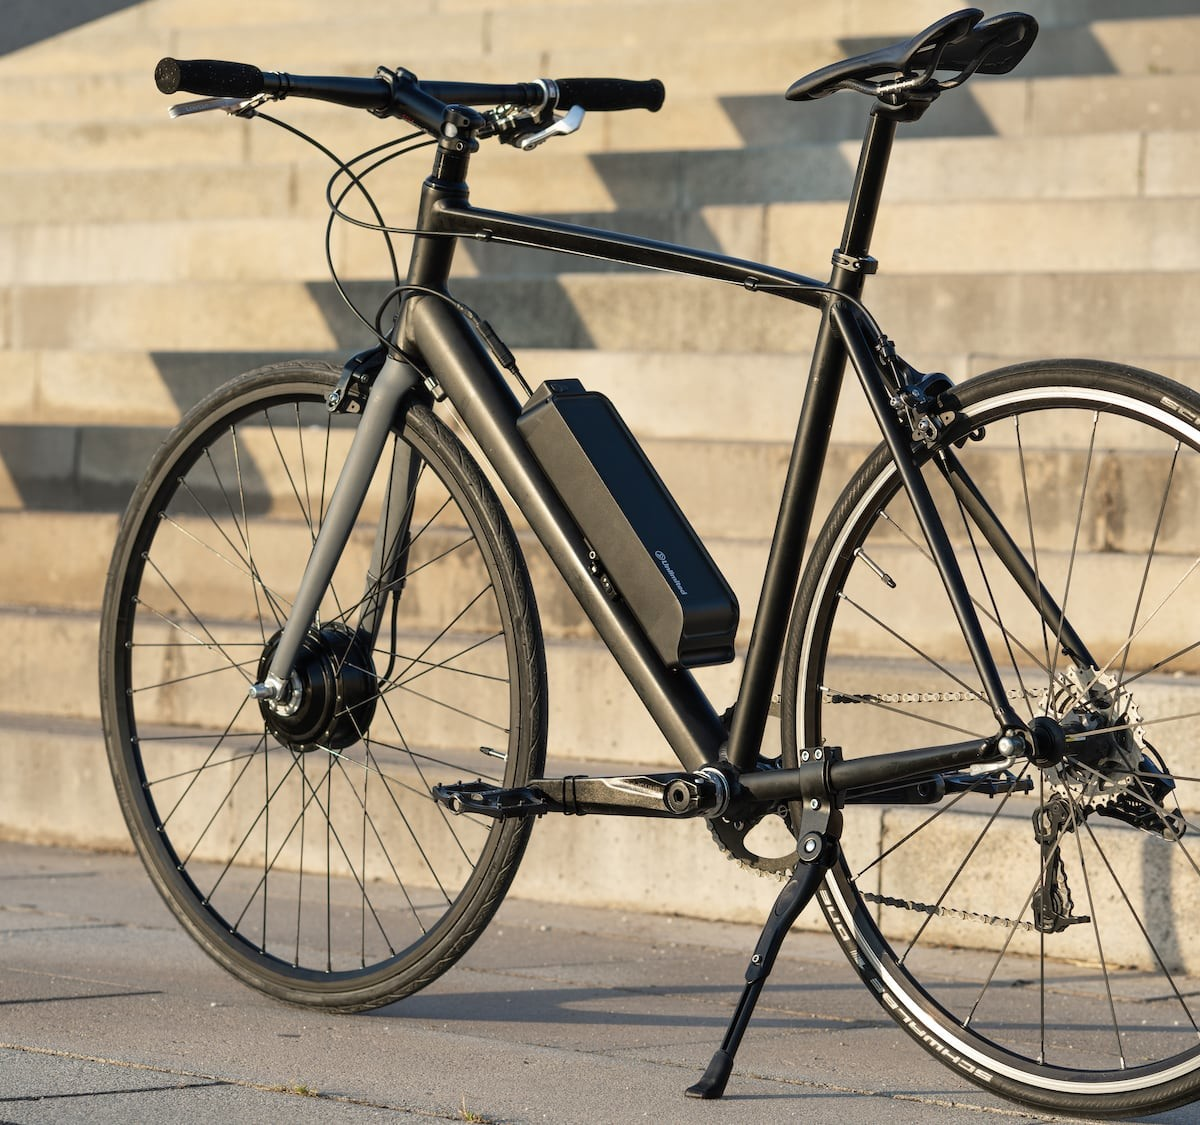 Unlimited e-Bike Conversion Kit turns any bicycle into an electric one